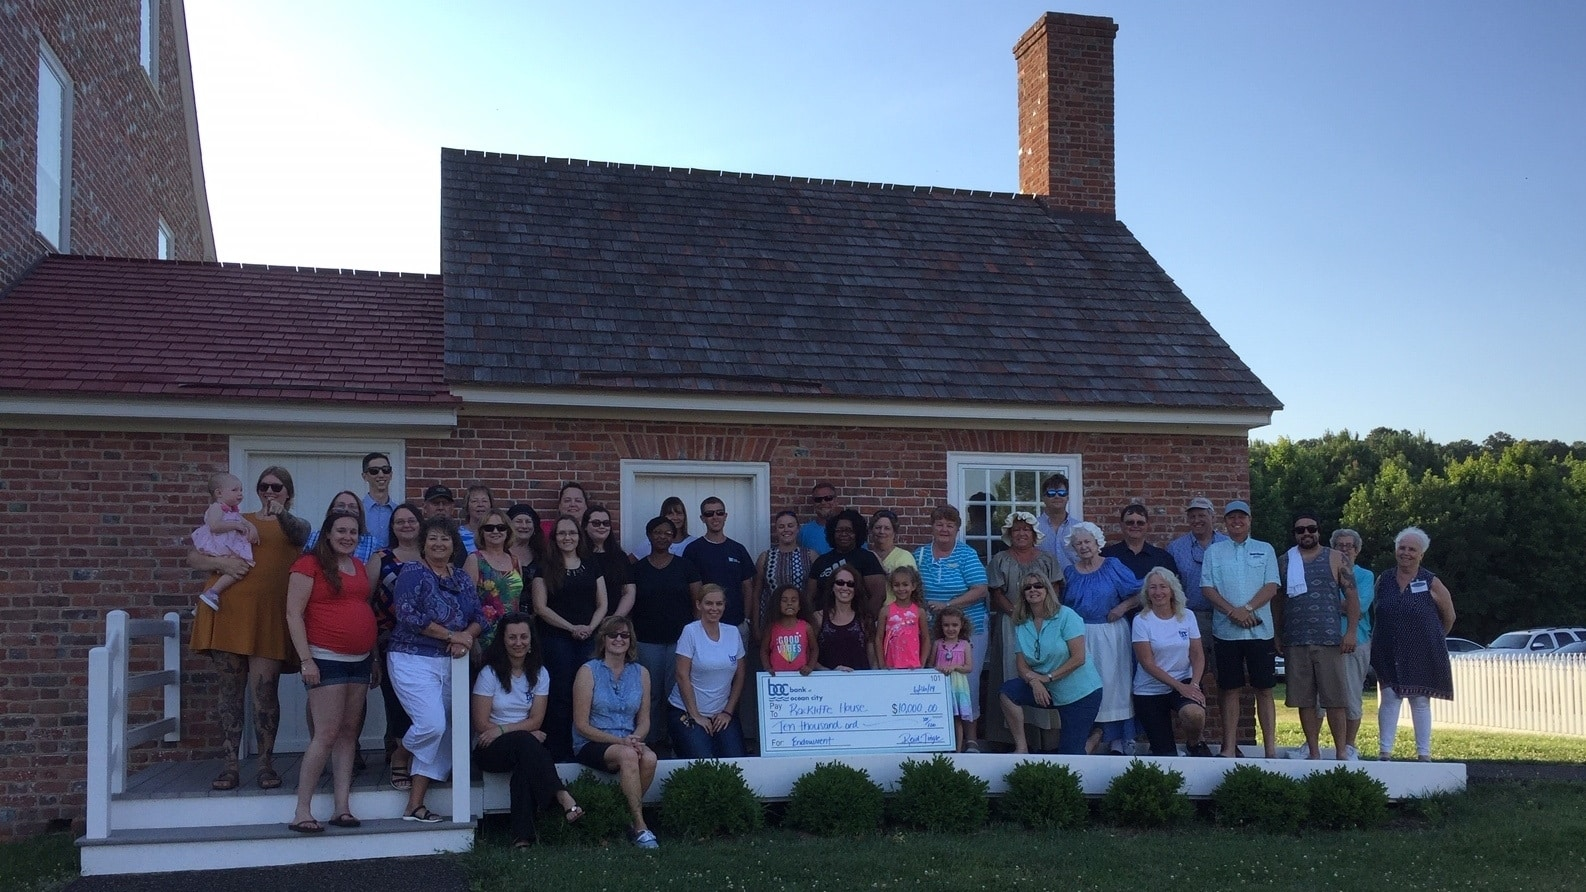 Community Involvement | Bank of Ocean City on robinson plantation house, moundsville penitentiary haunted house, rice plantation house, miller plantation house,